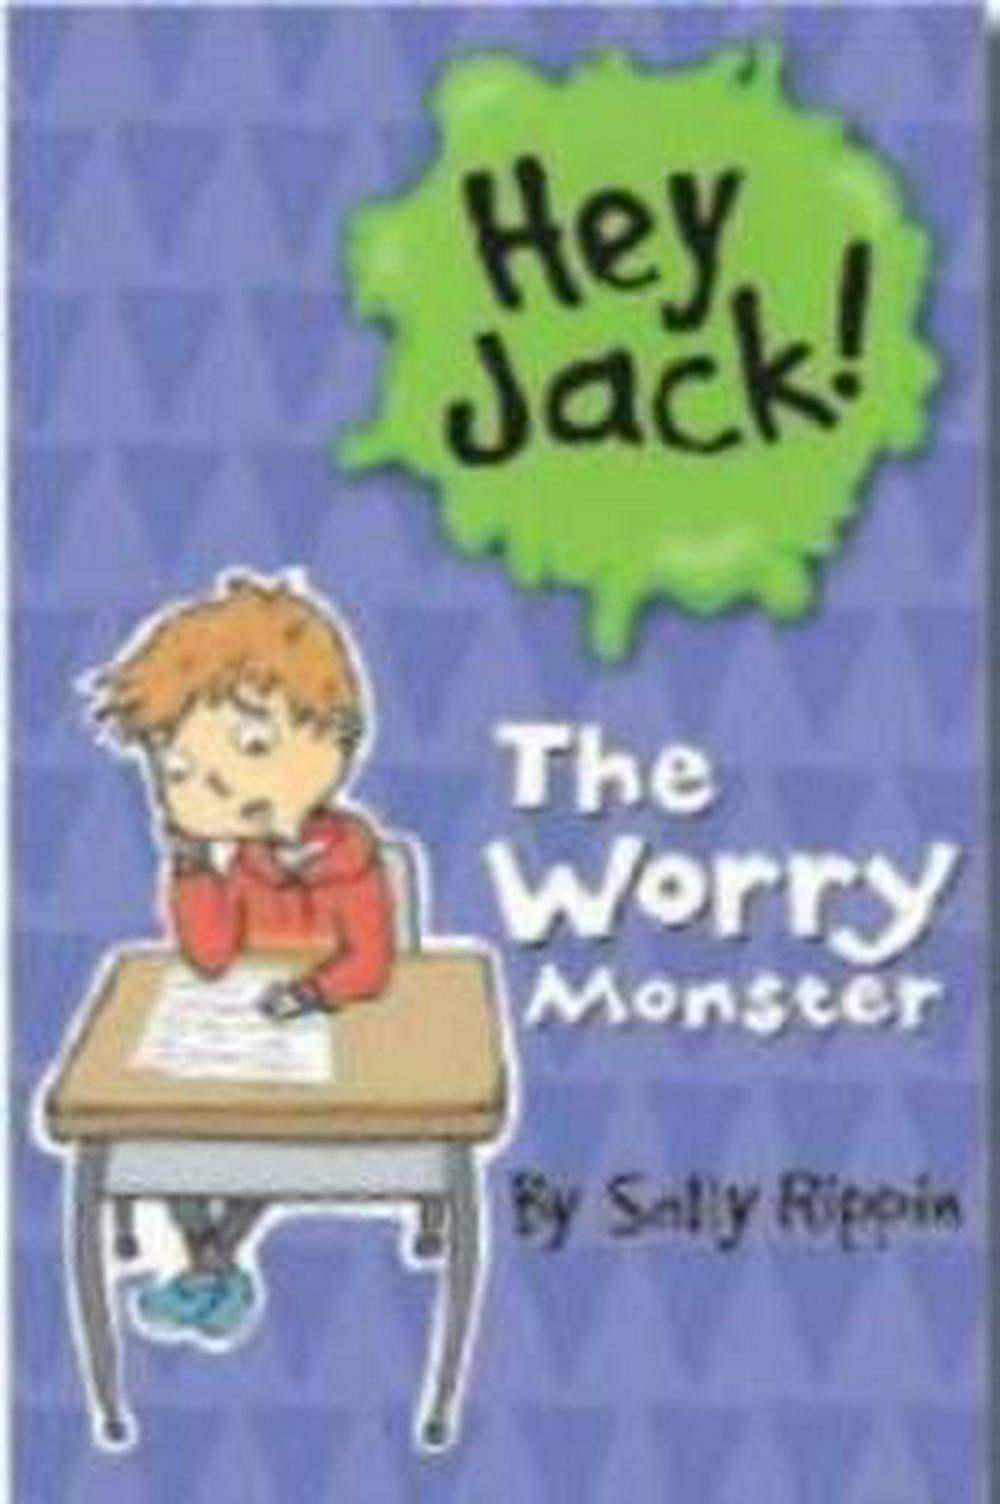 The Worry Monster